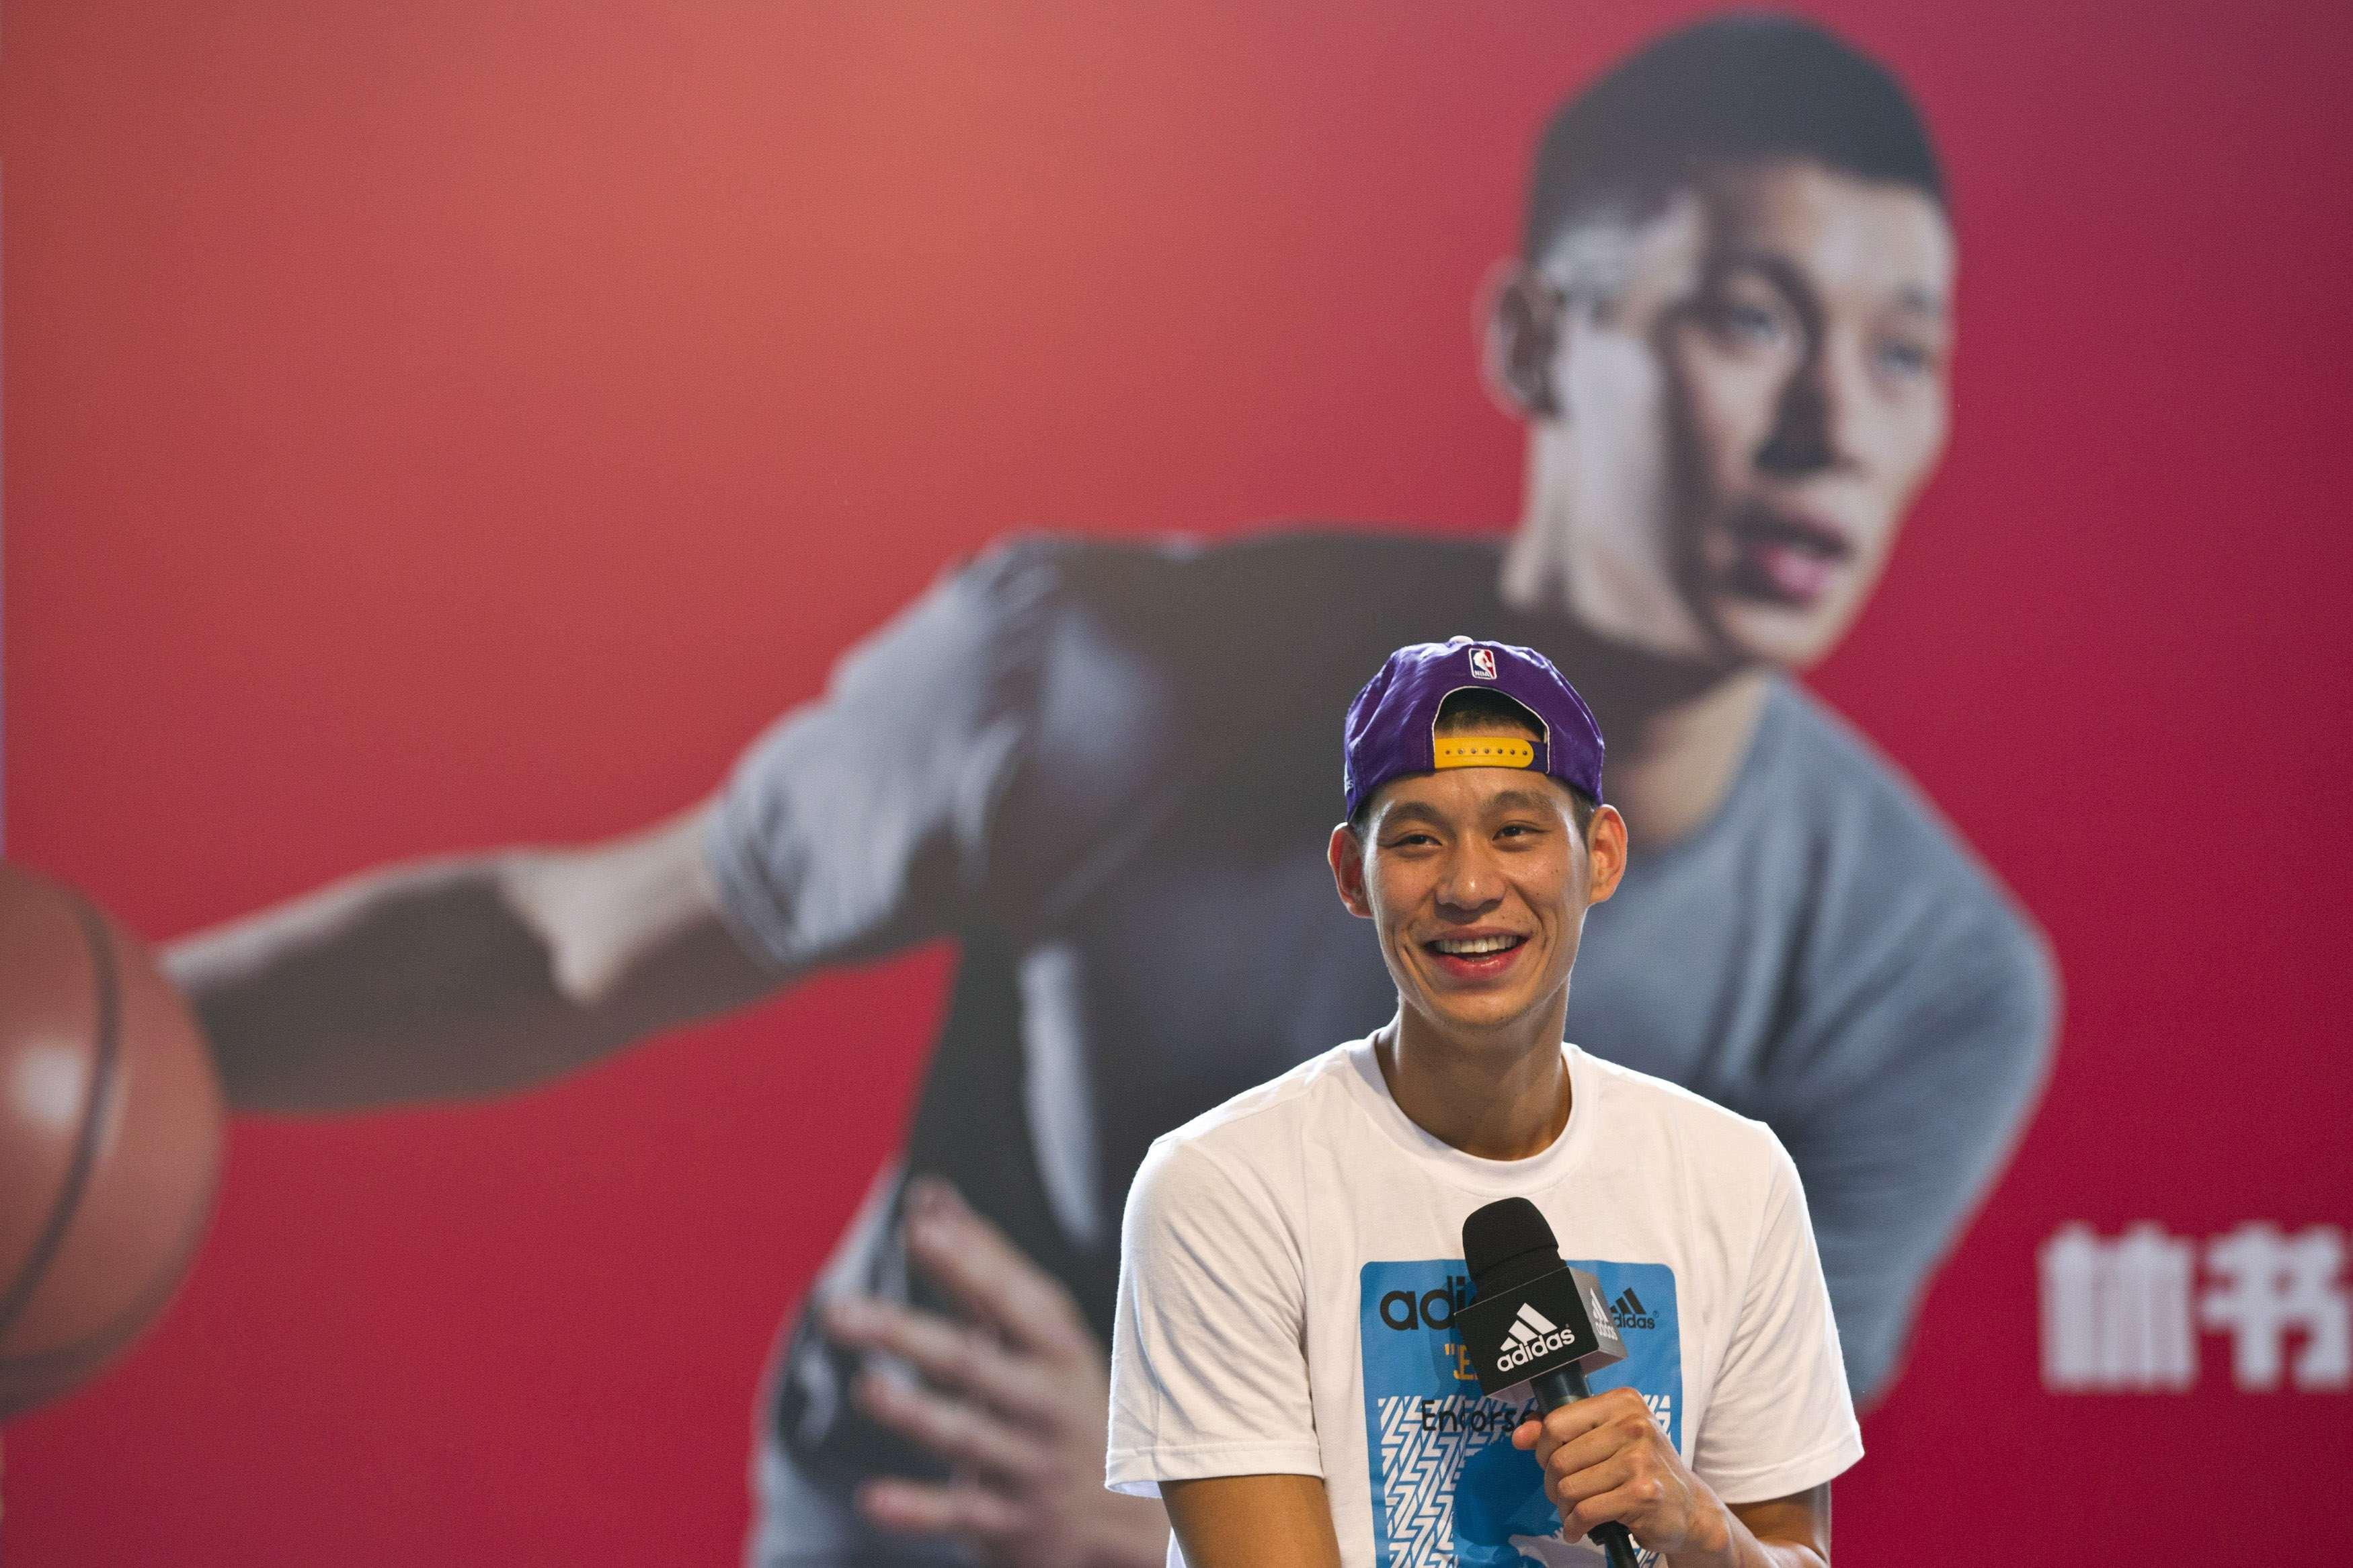 Image: NBA player Jeremy Lin of Los Angeles Lakers attends a promotional event as part of his Asia tour, in Shanghai